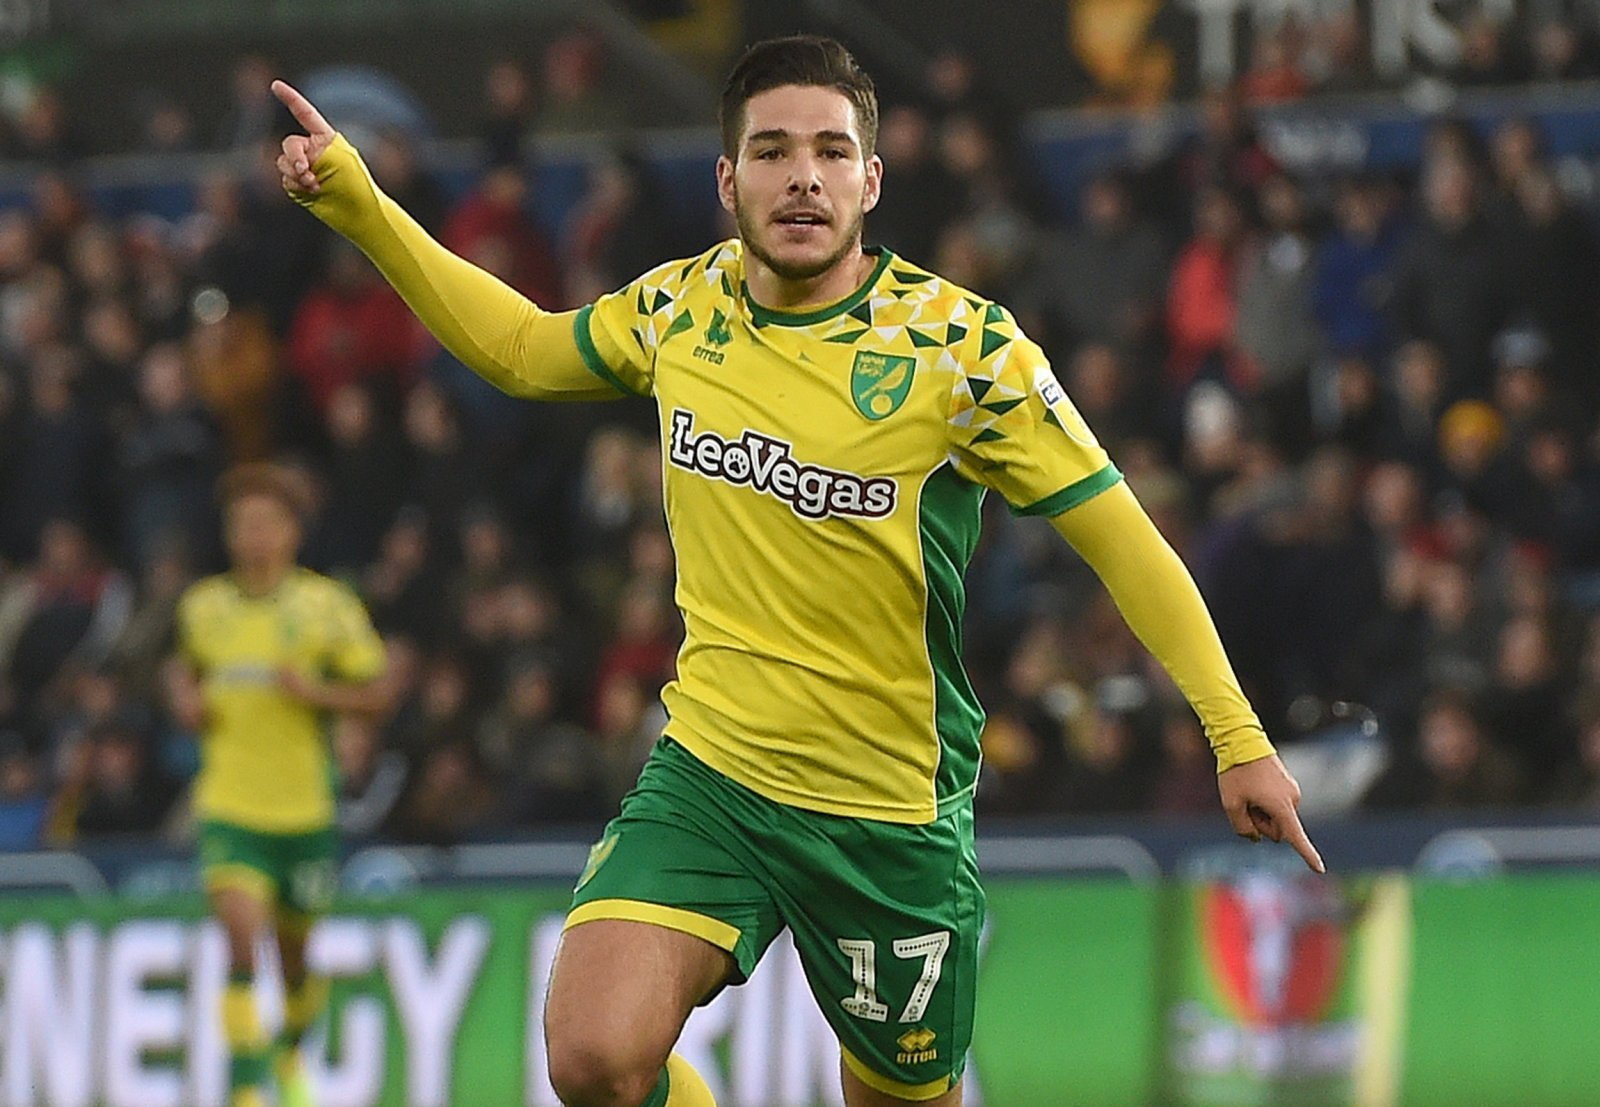 Norwich fans on Twitter absolutely loved seeing Emiliano Buendia tear Ipswich apart